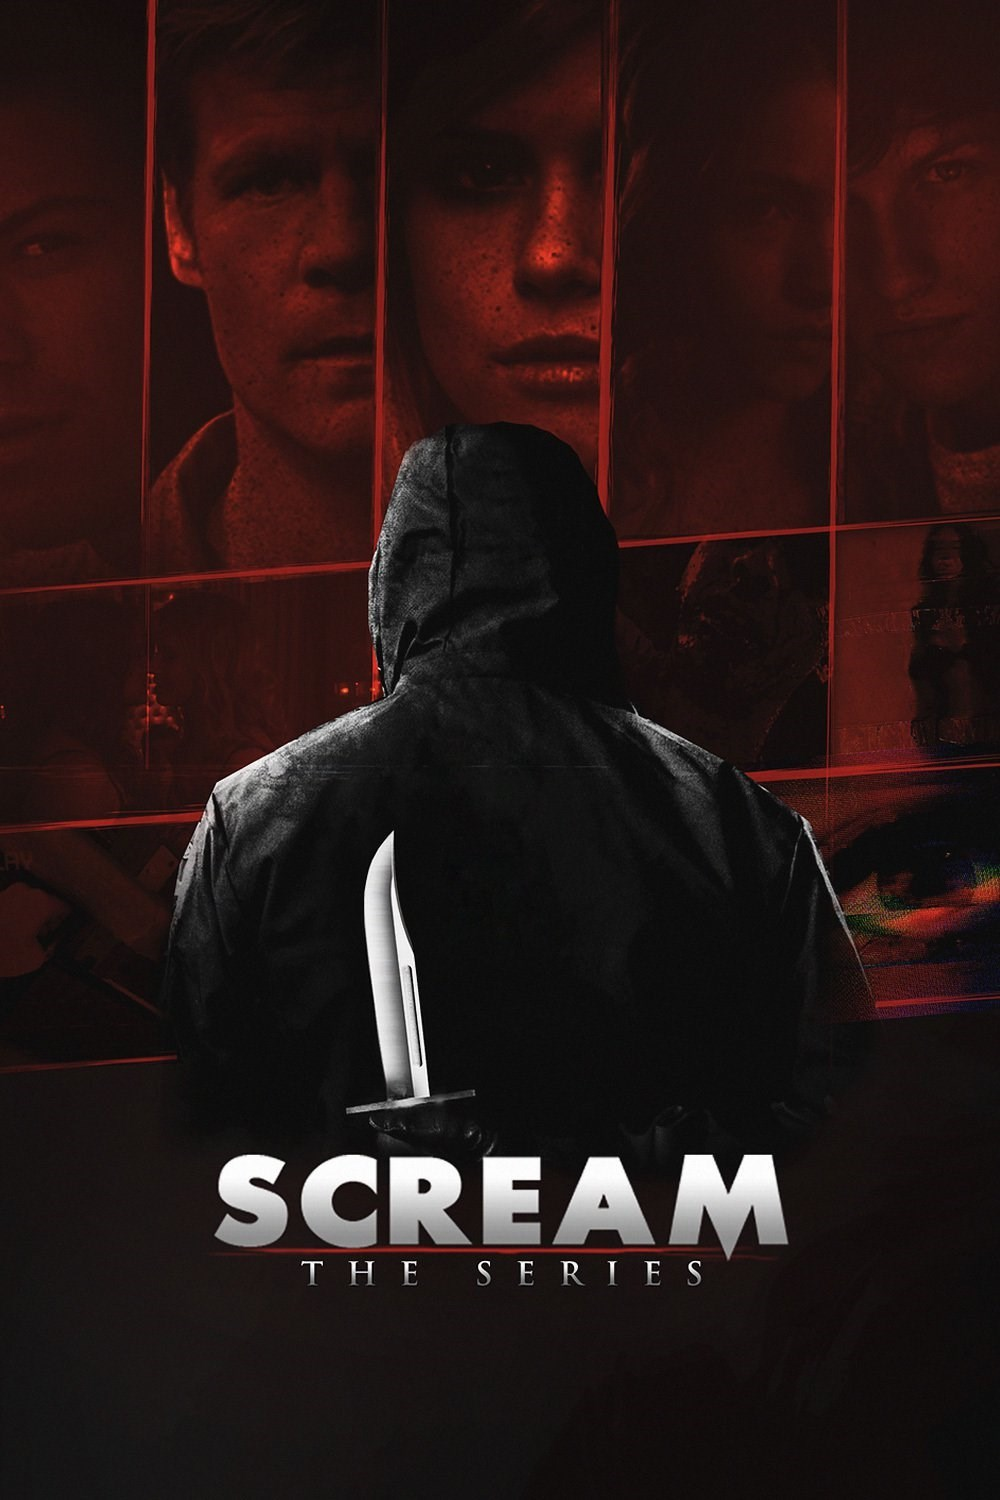 poster, scream, 2015, tv series, tv show, horror, thriller, mystery, crime, best series 2015, micaela ramos, wanderlust,